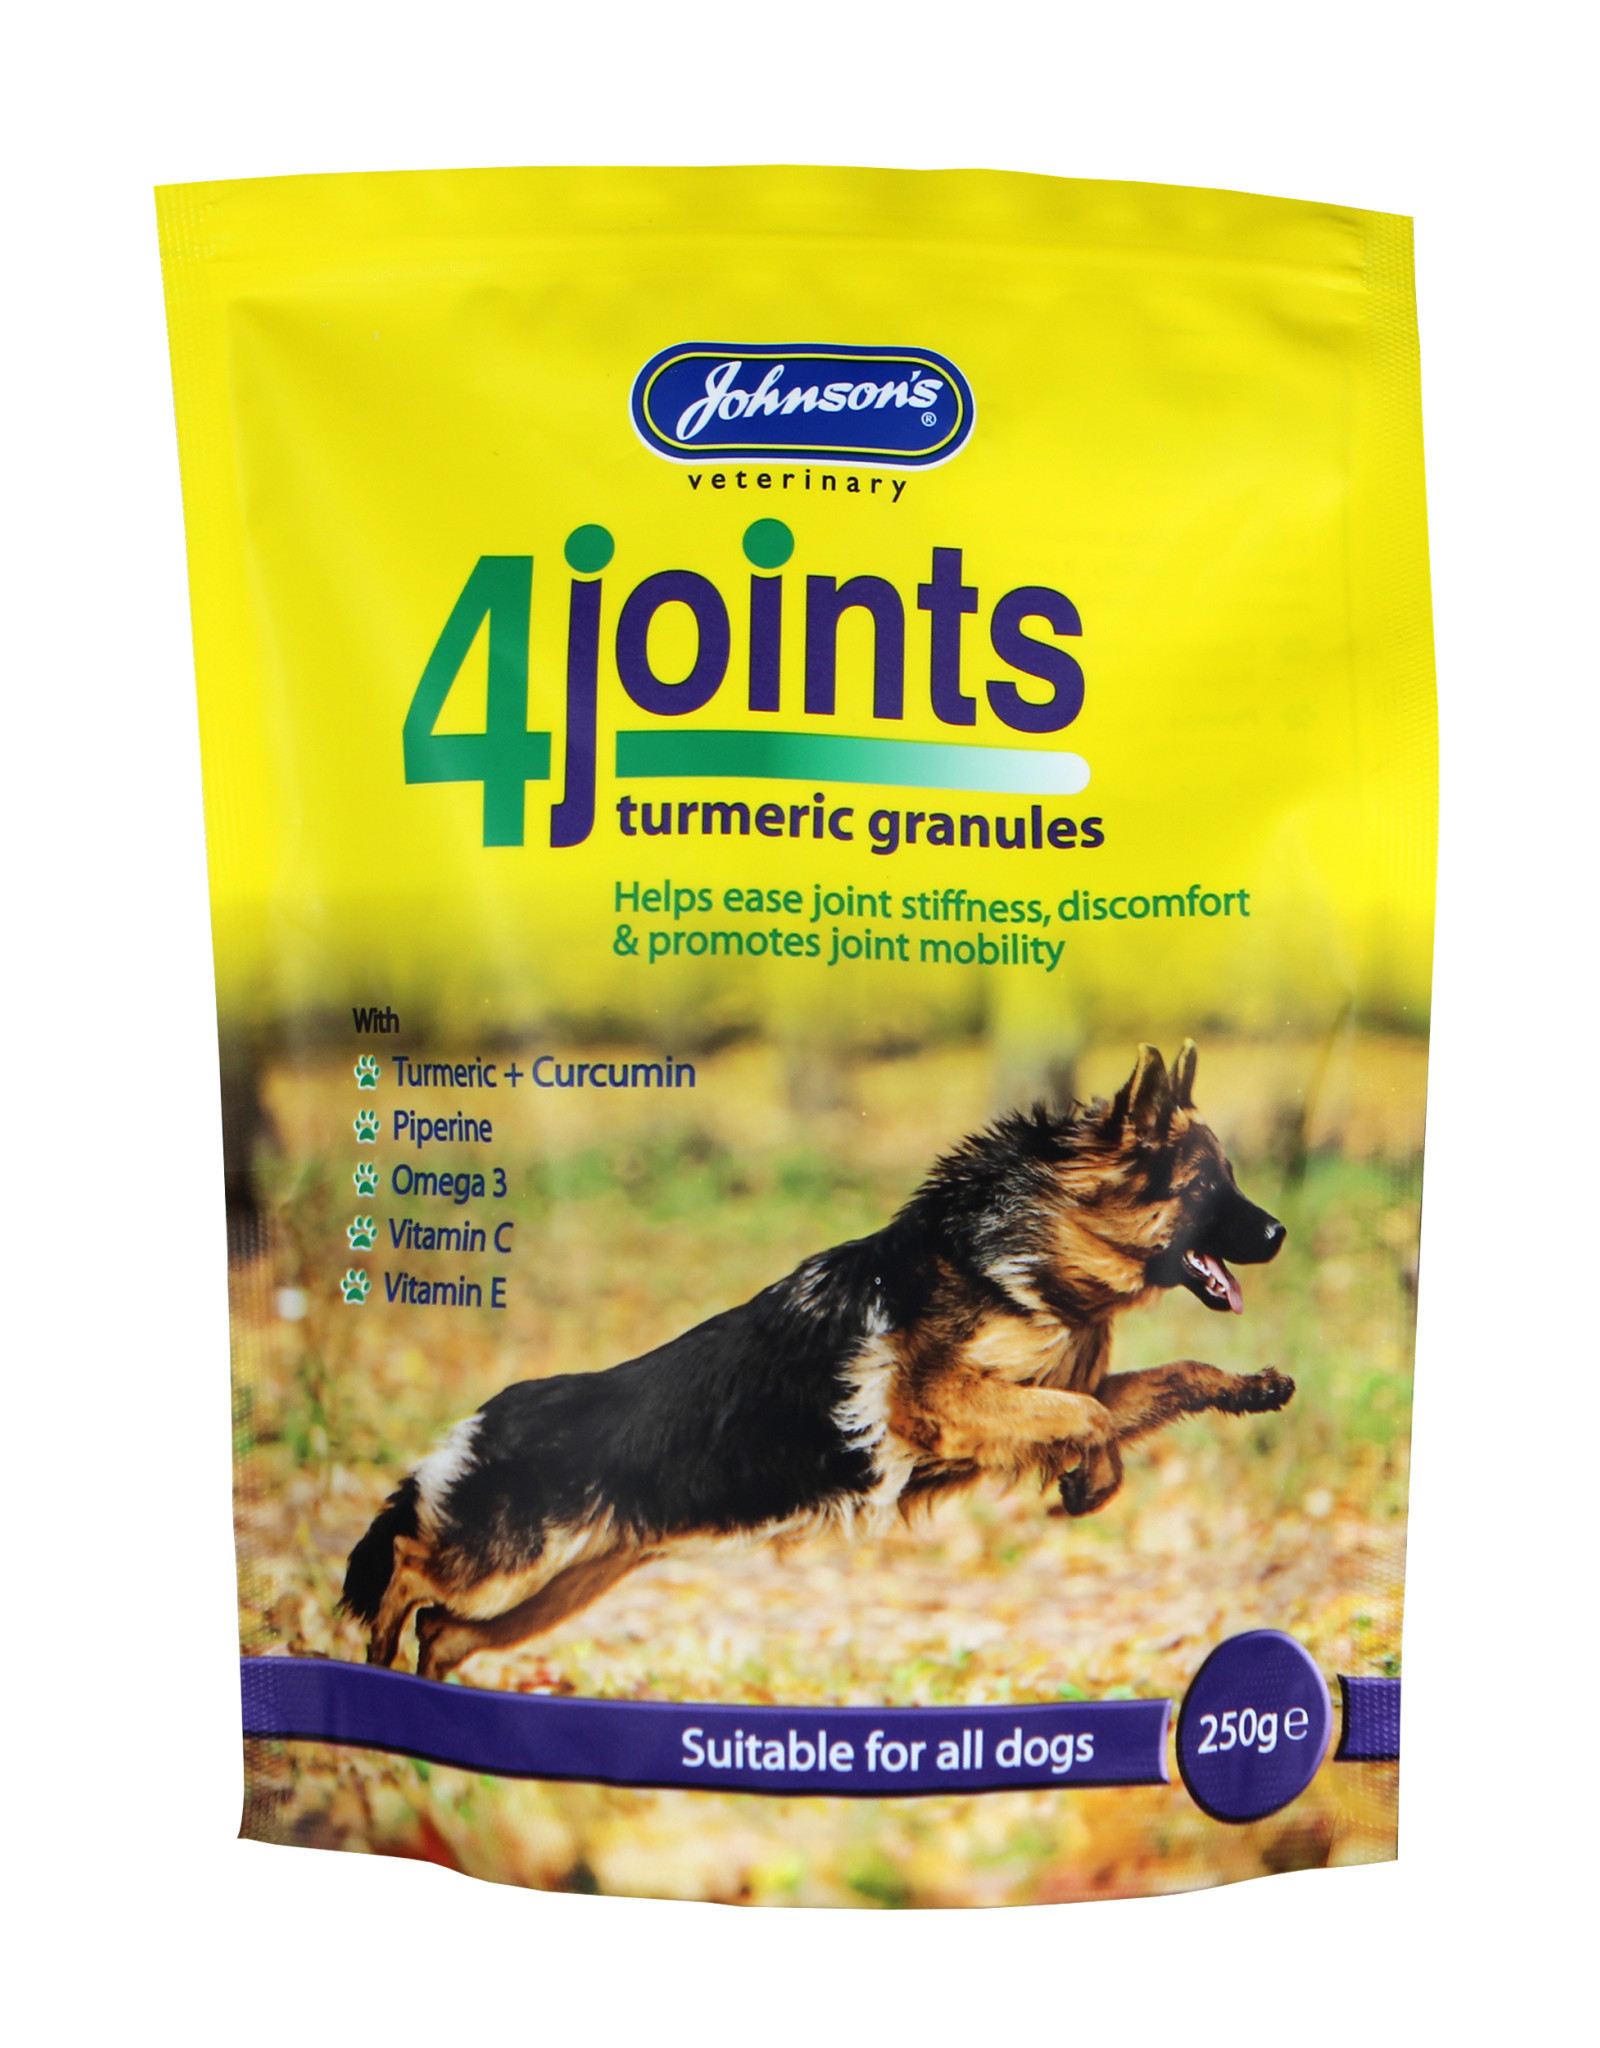 Johnsons Veterinary 4Joints Turmeric Granules Joint Supplement for Dogs, 250g